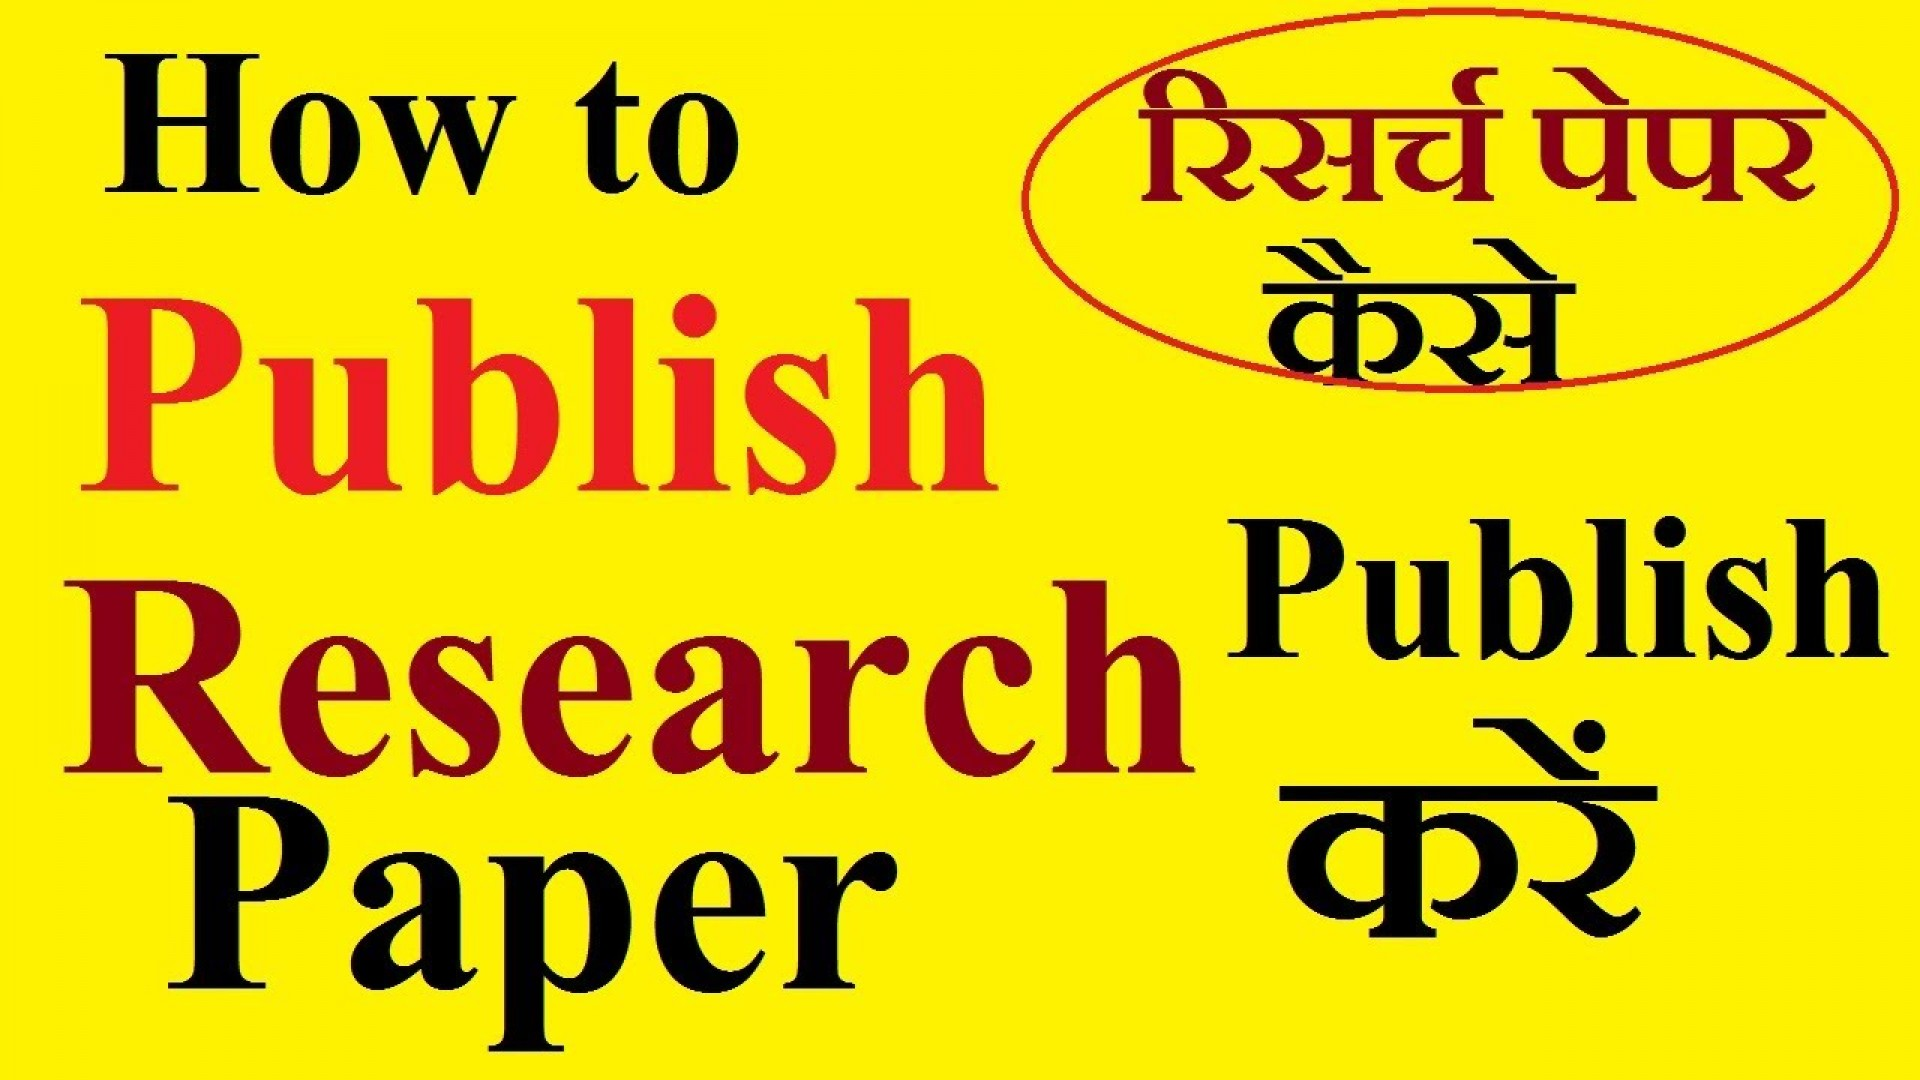 002 Maxresdefault How To Publish Research Frightening Paper On Google Scholar A In Journal Pdf Springer 1920